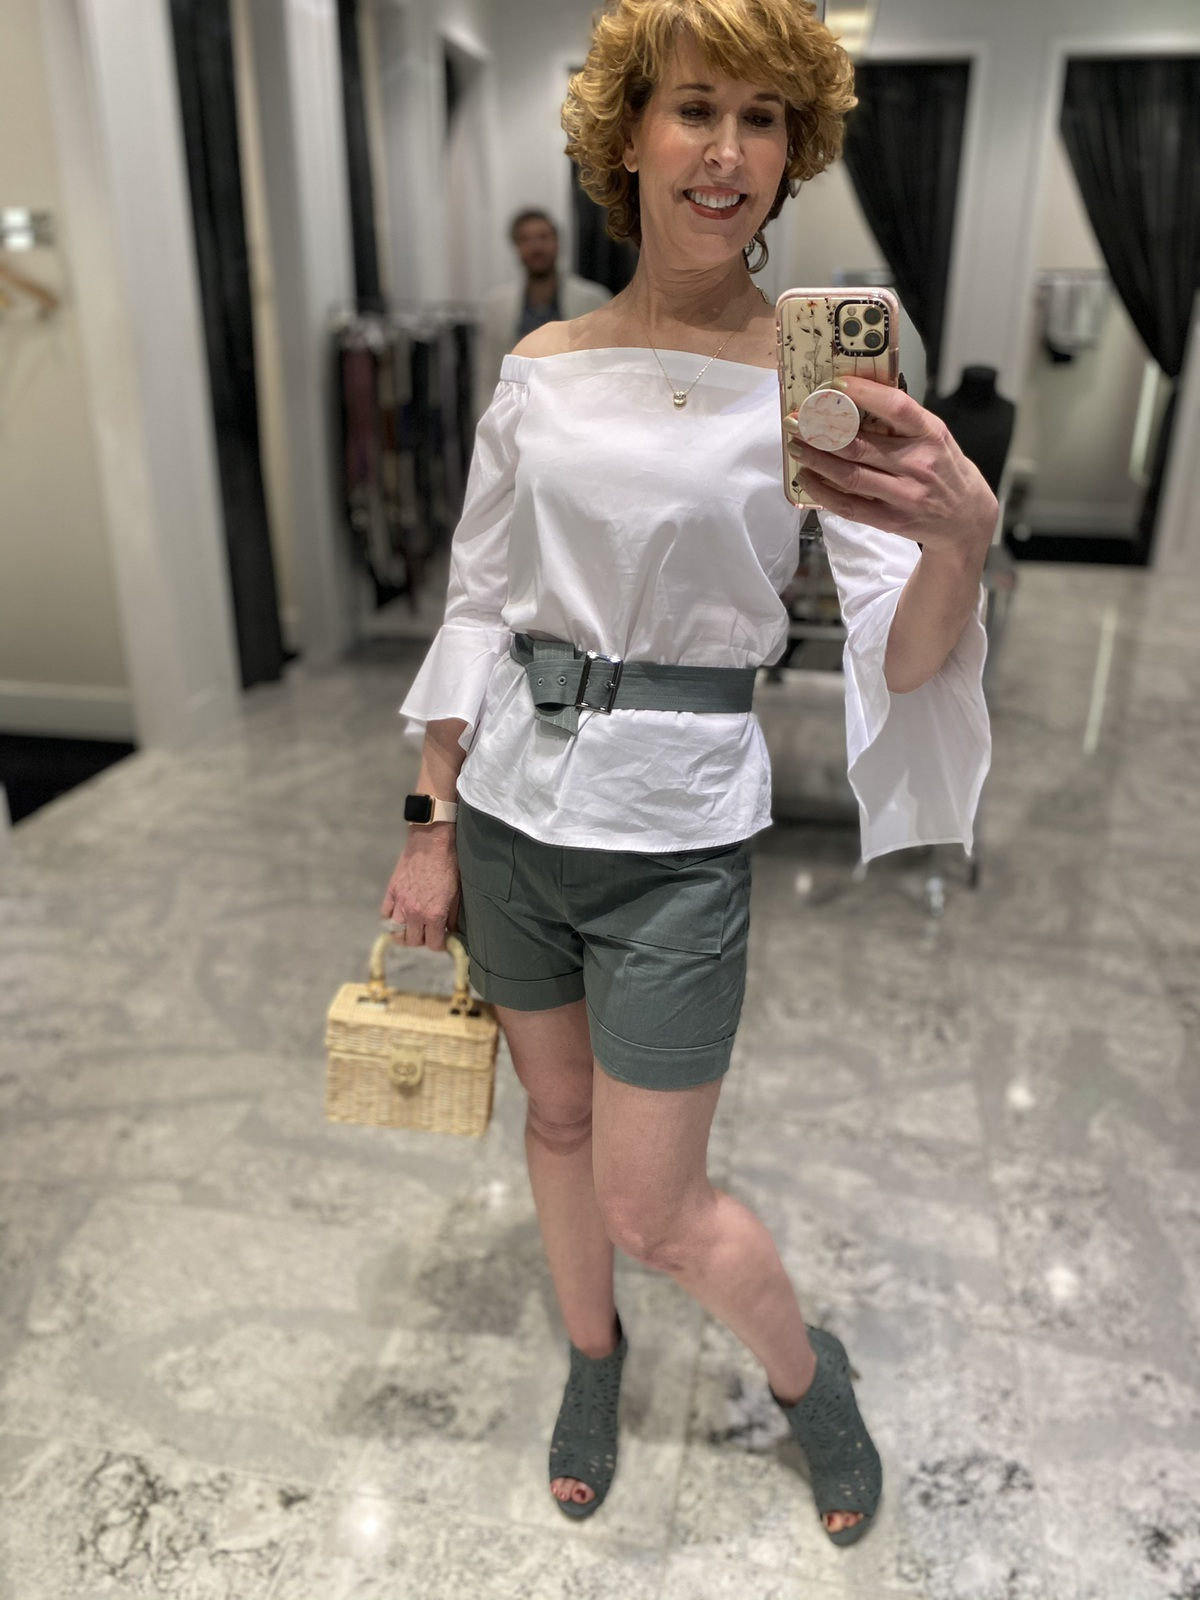 Mirror selfie of woman over 50 wearing green shorts white off-the-shoulder top with green booties carrying wicker purse